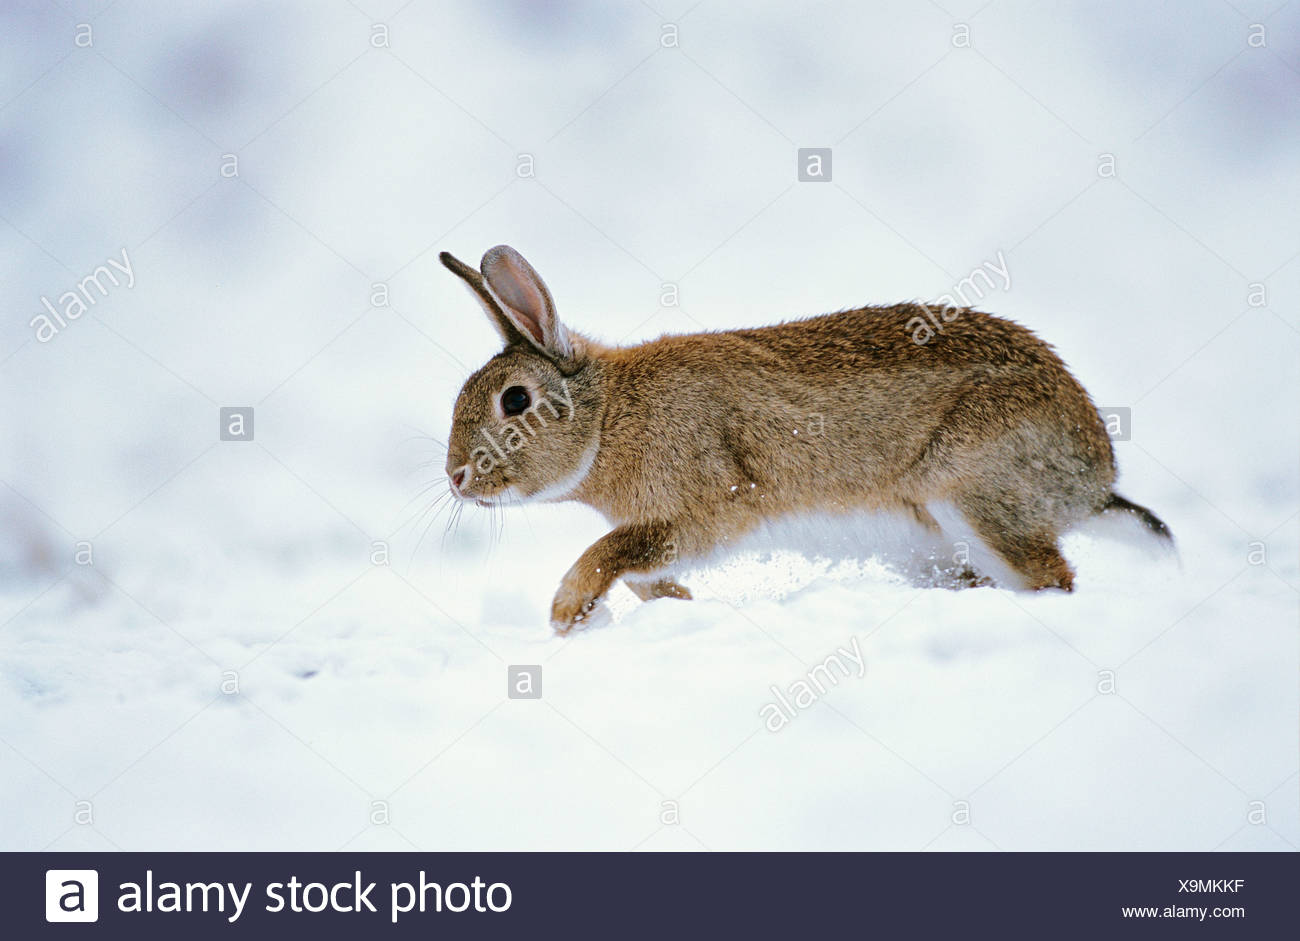 Europe Le Lapin (Oryctolagus cuniculus) walking in snow Photo Stock